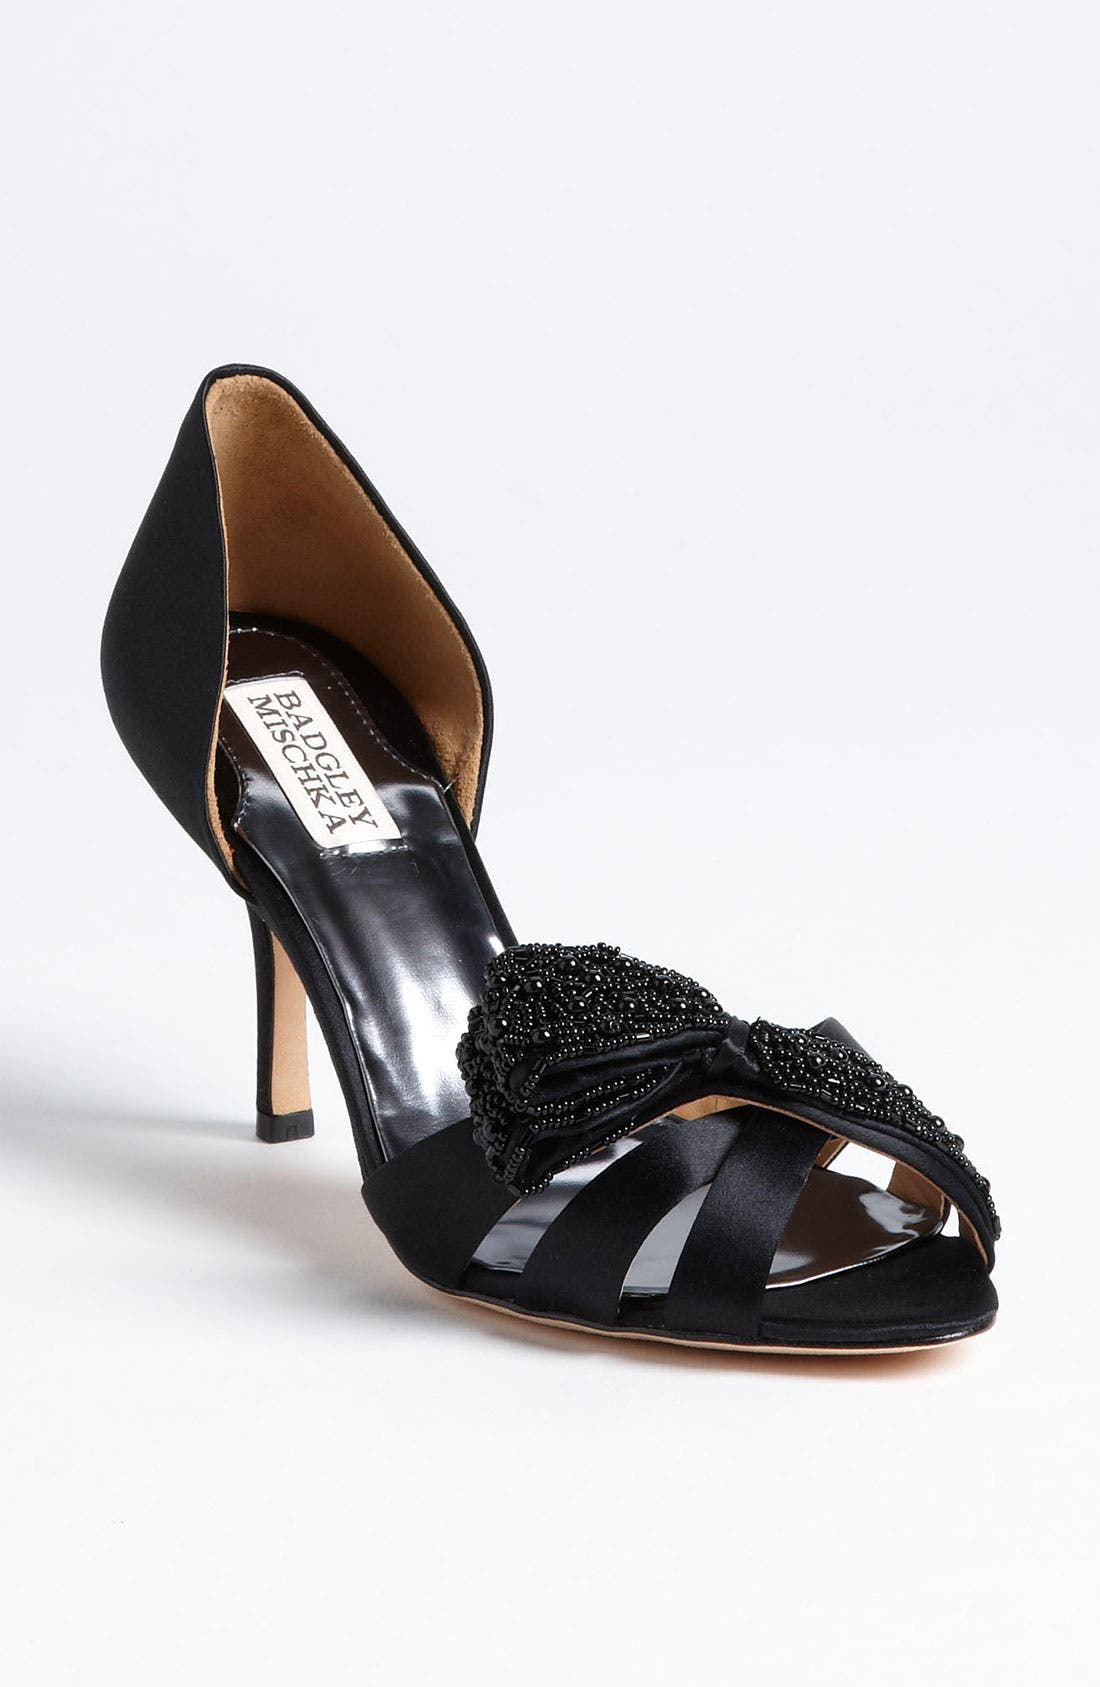 Main Image - Badgley Mischka 'Vita' Pump